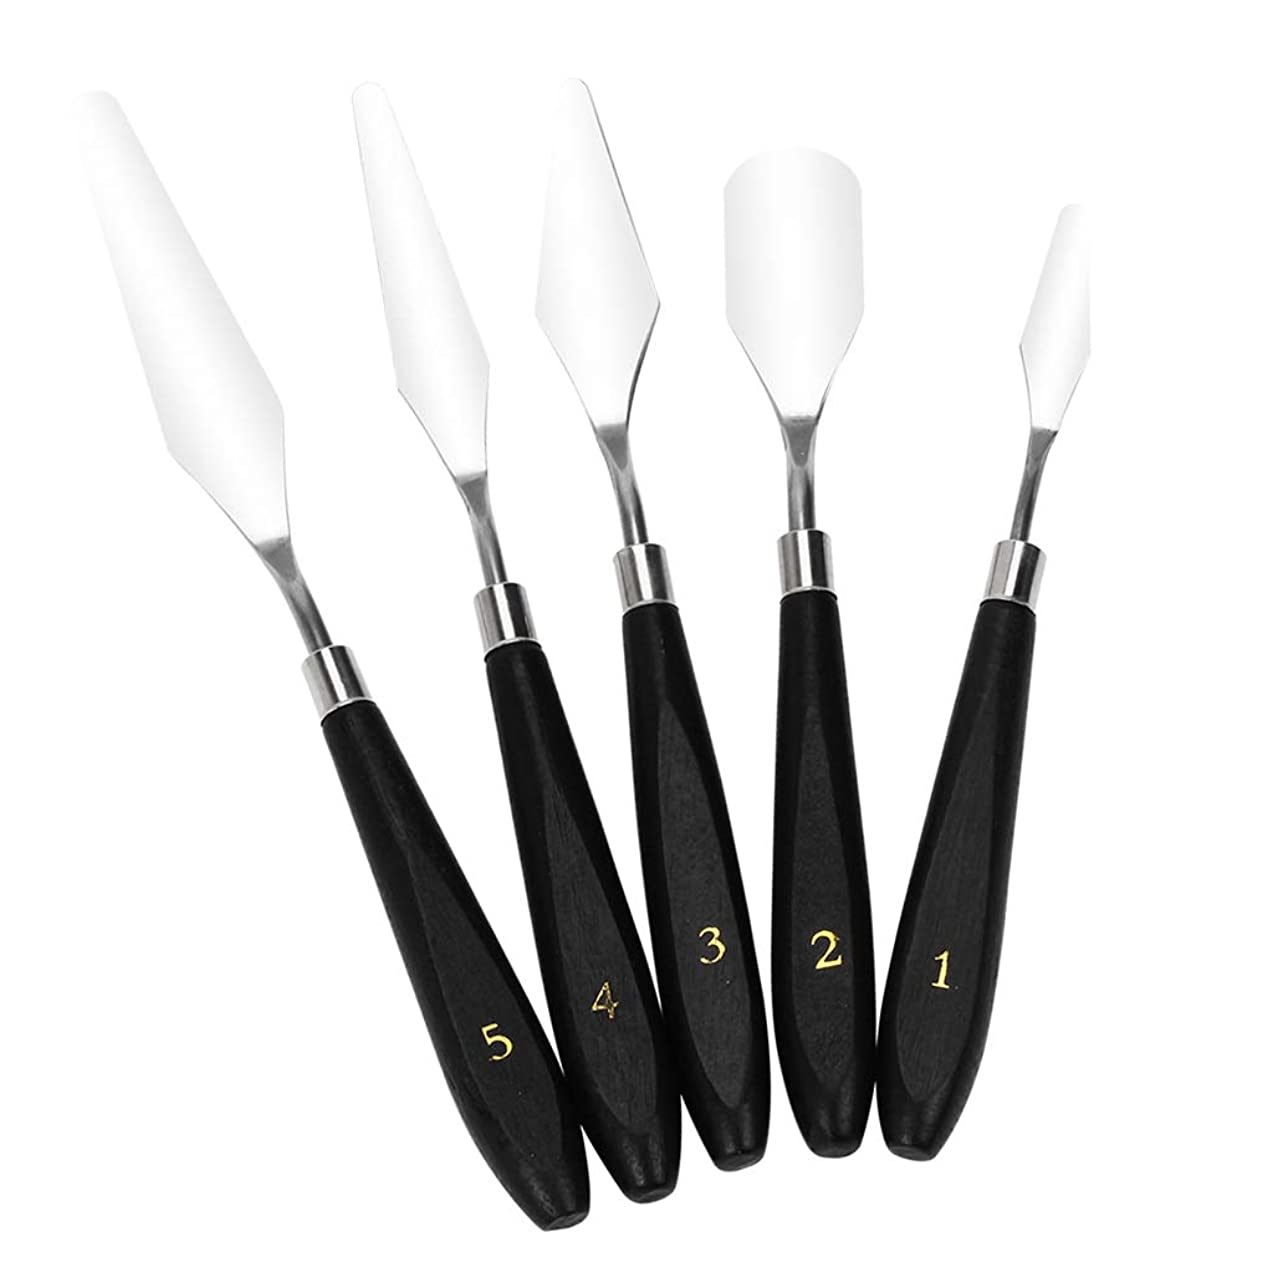 D DOLITY 5 Types 3D Print Removal Tools with Wood Handle Spatula Knife Cleaning Kits